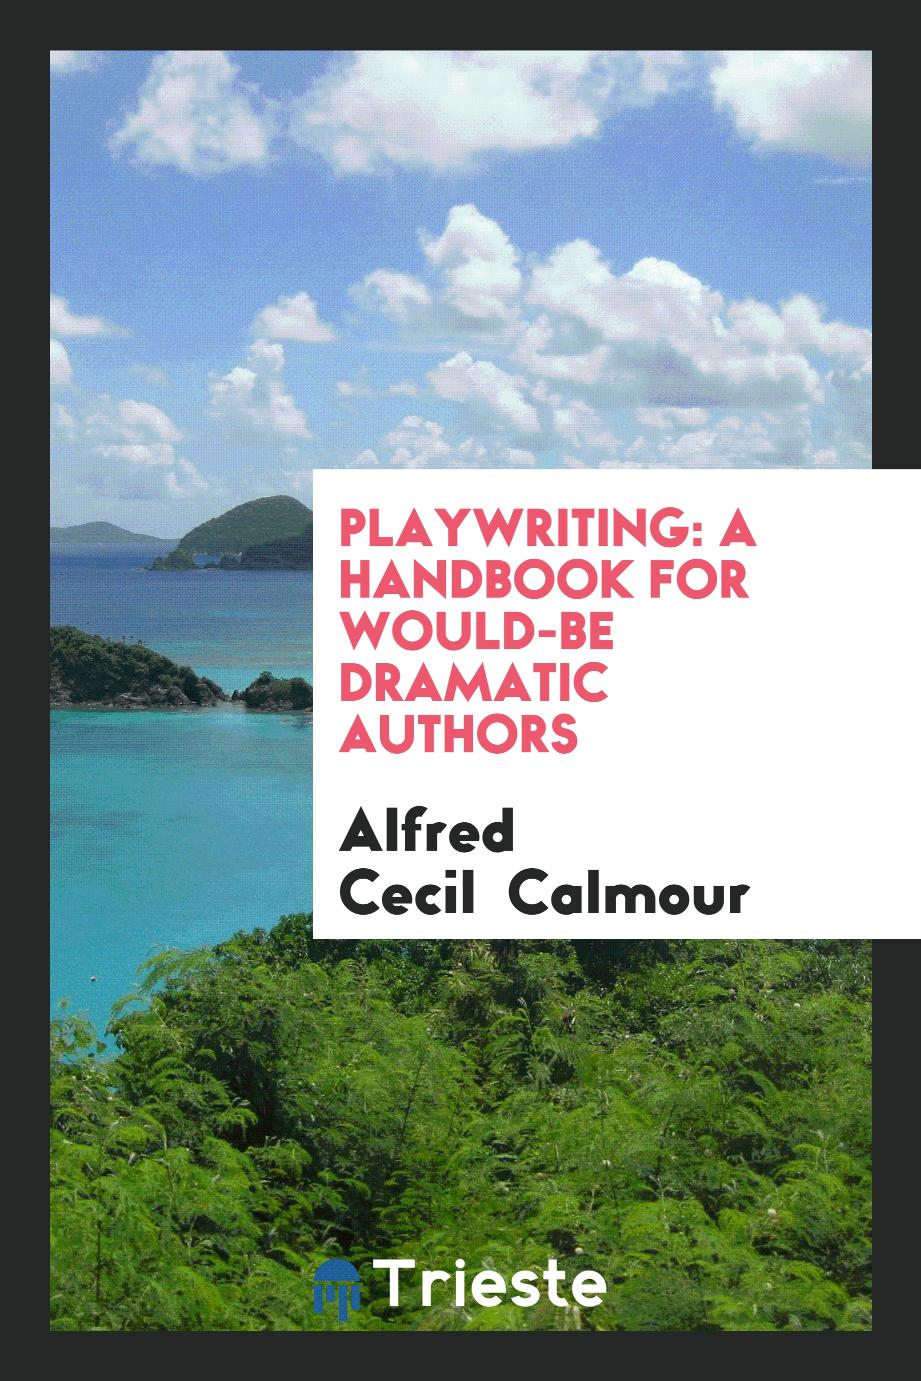 Playwriting: A Handbook for Would-Be Dramatic Authors